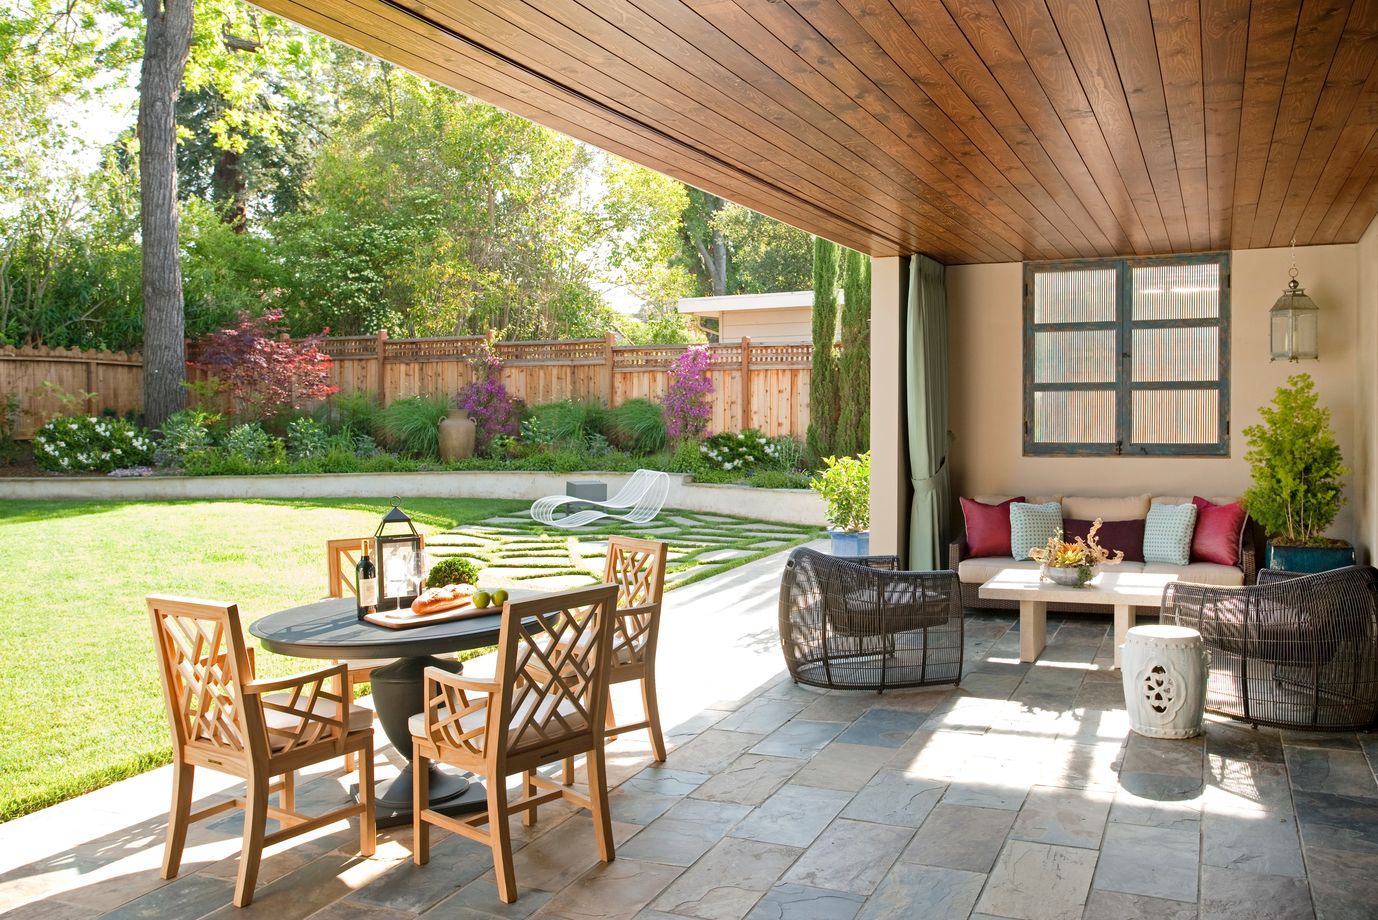 Outdoor living 8 ideas to get the most out of your space for Patio decorating photos